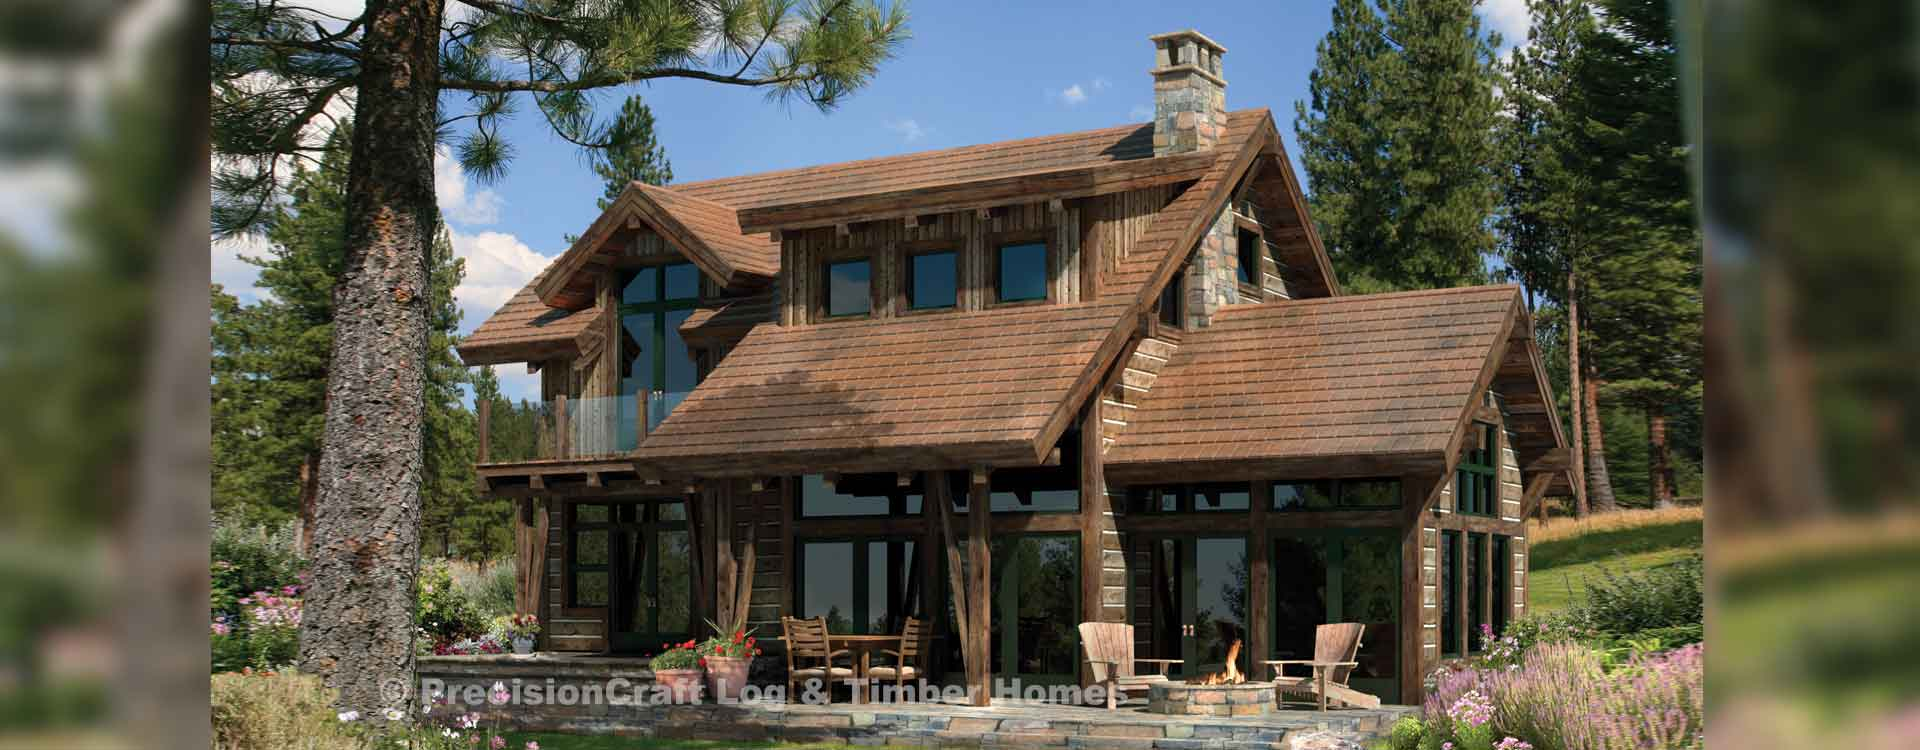 Clearwater timber home Rendering